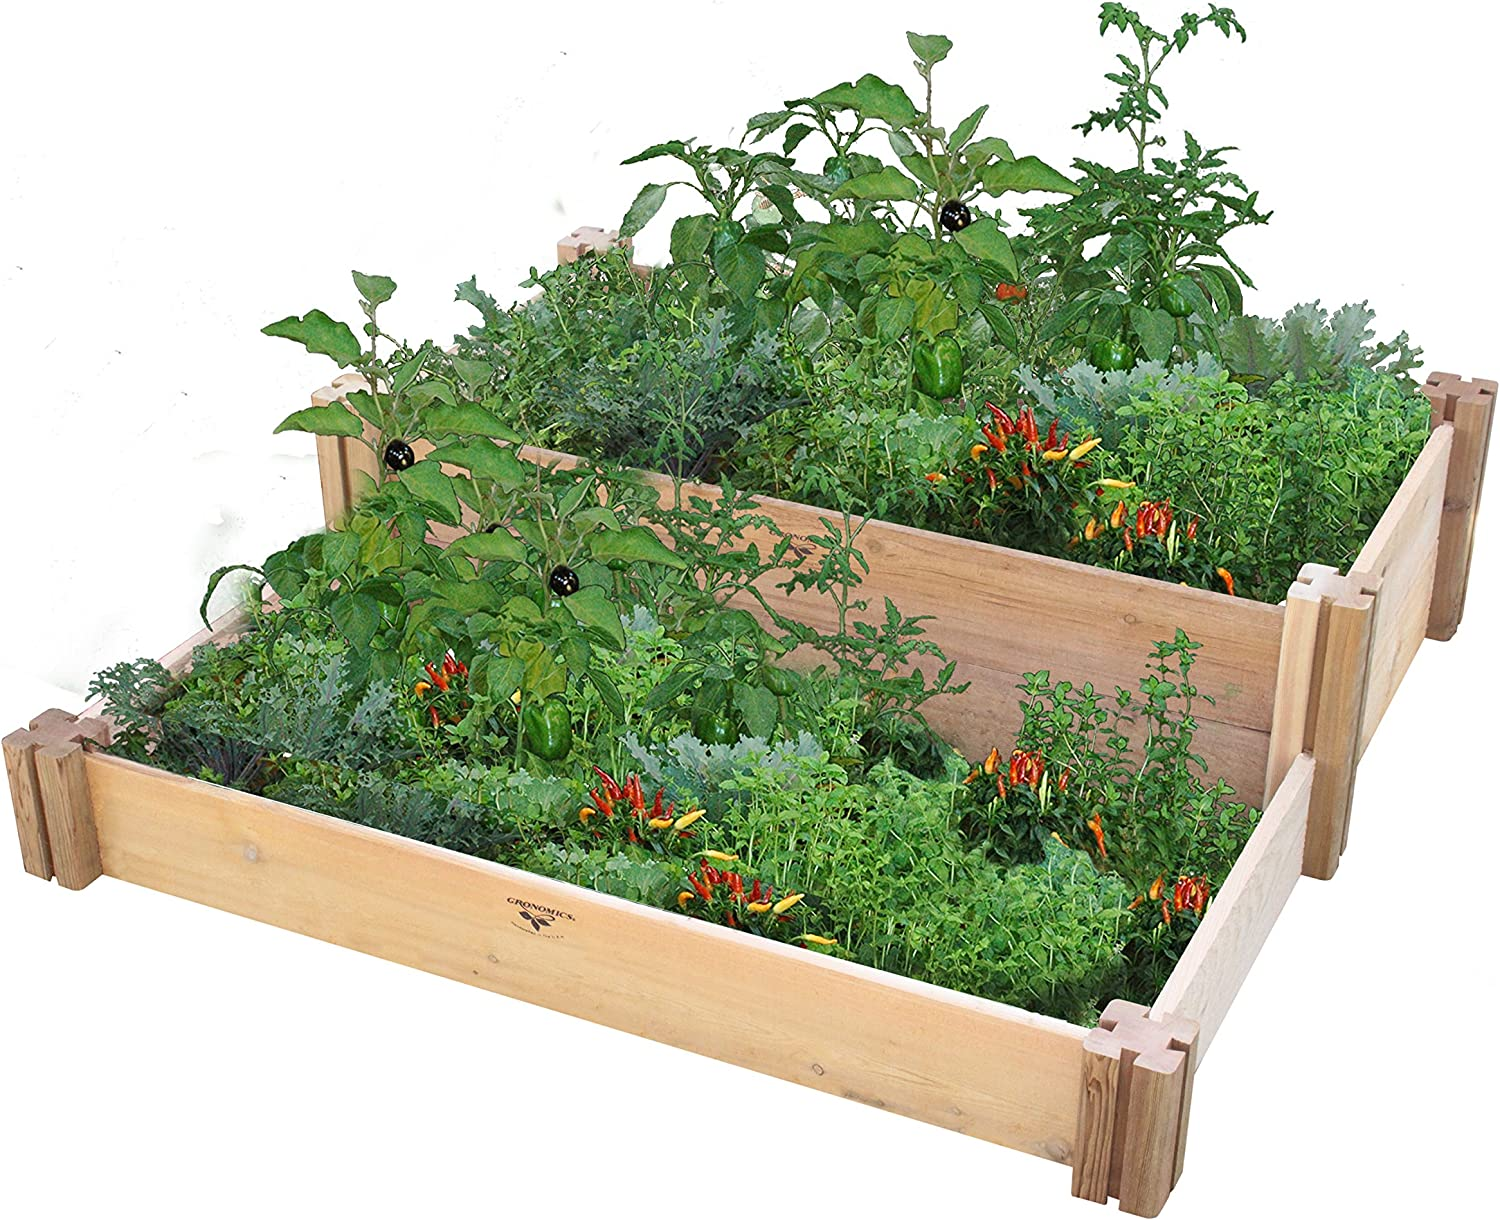 Gronomics Multi-Level Rustic Raised Garden Bed, 36 by 36 by 13""